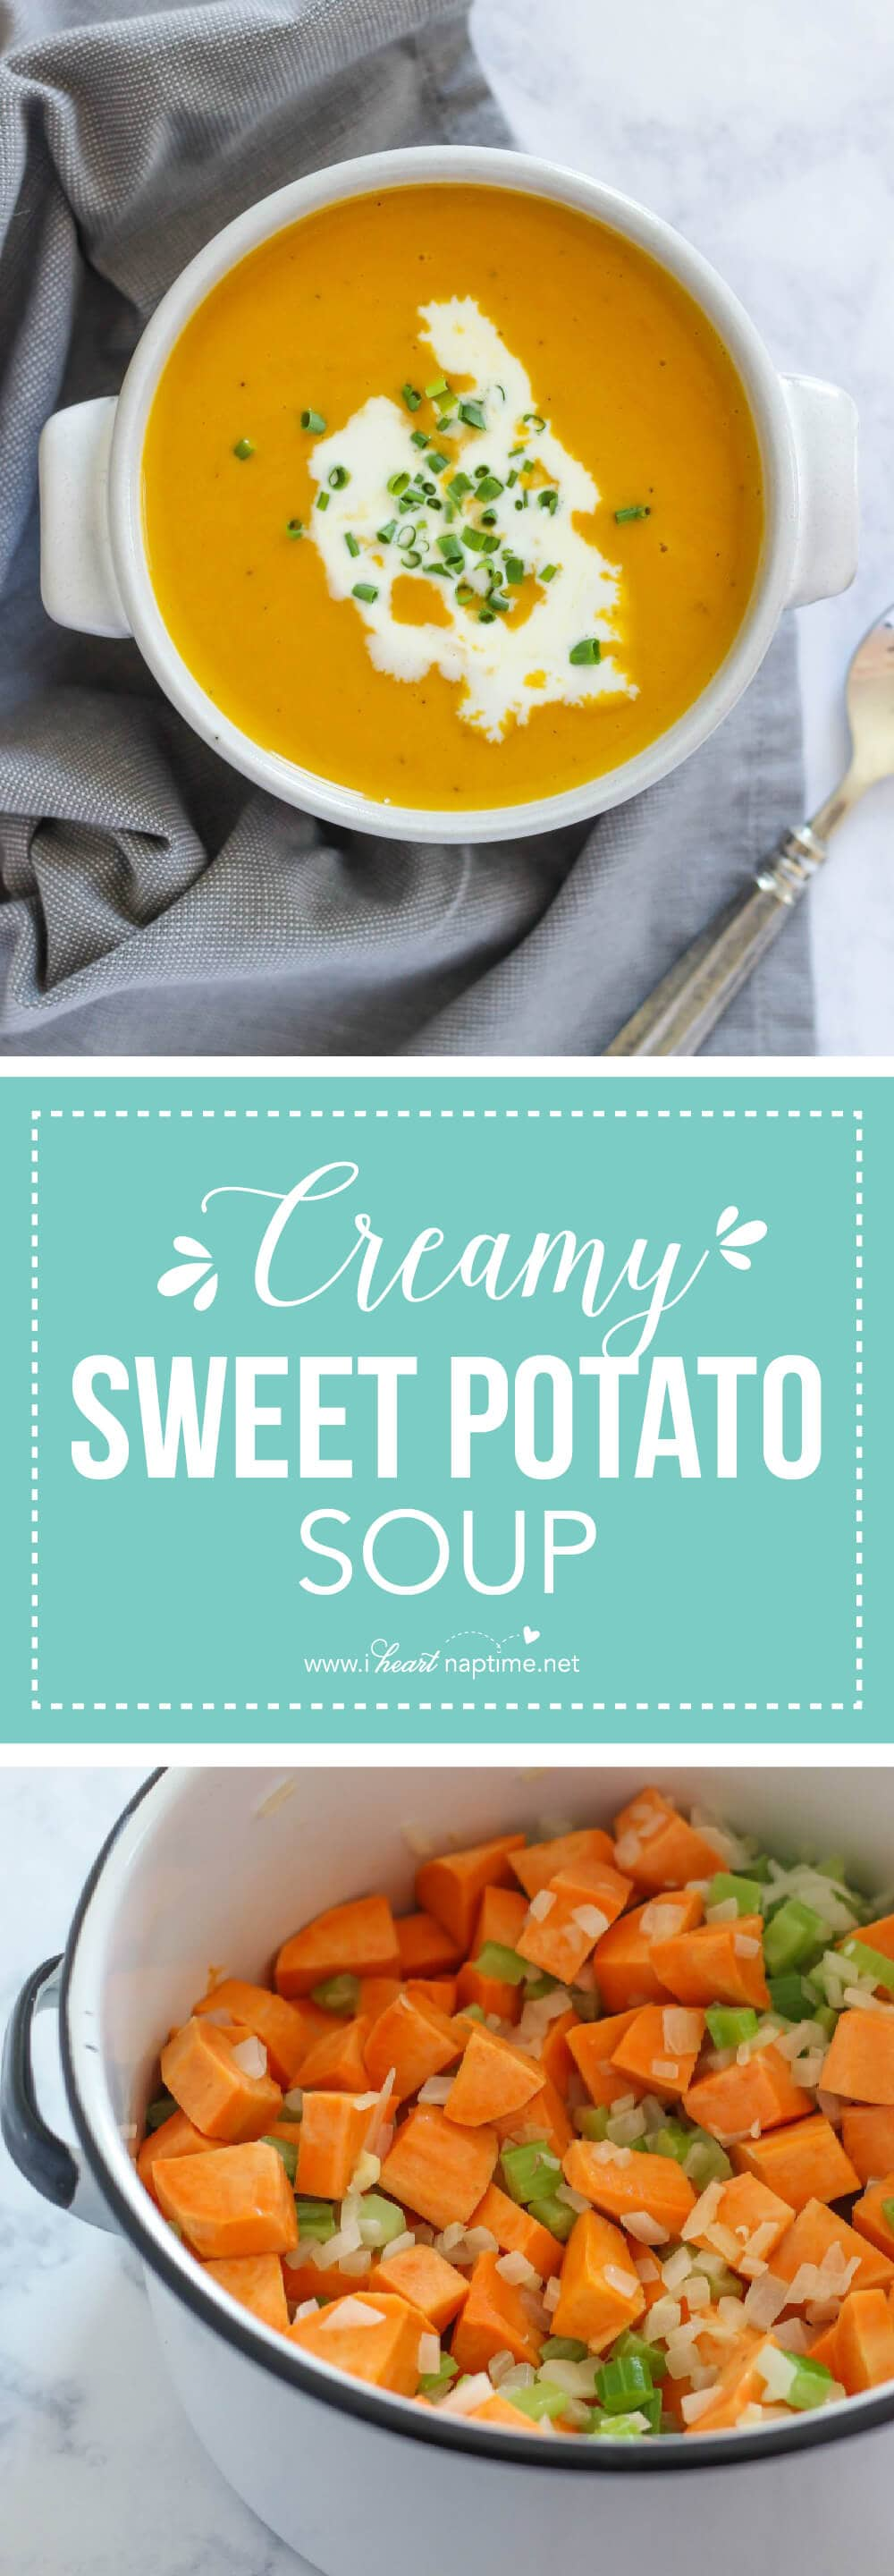 Creamy Sweet Potato Soup... a hearty and easy main dish soup recipe perfect for cold weather. This is a delicious vegetarian recipe everyone will love.